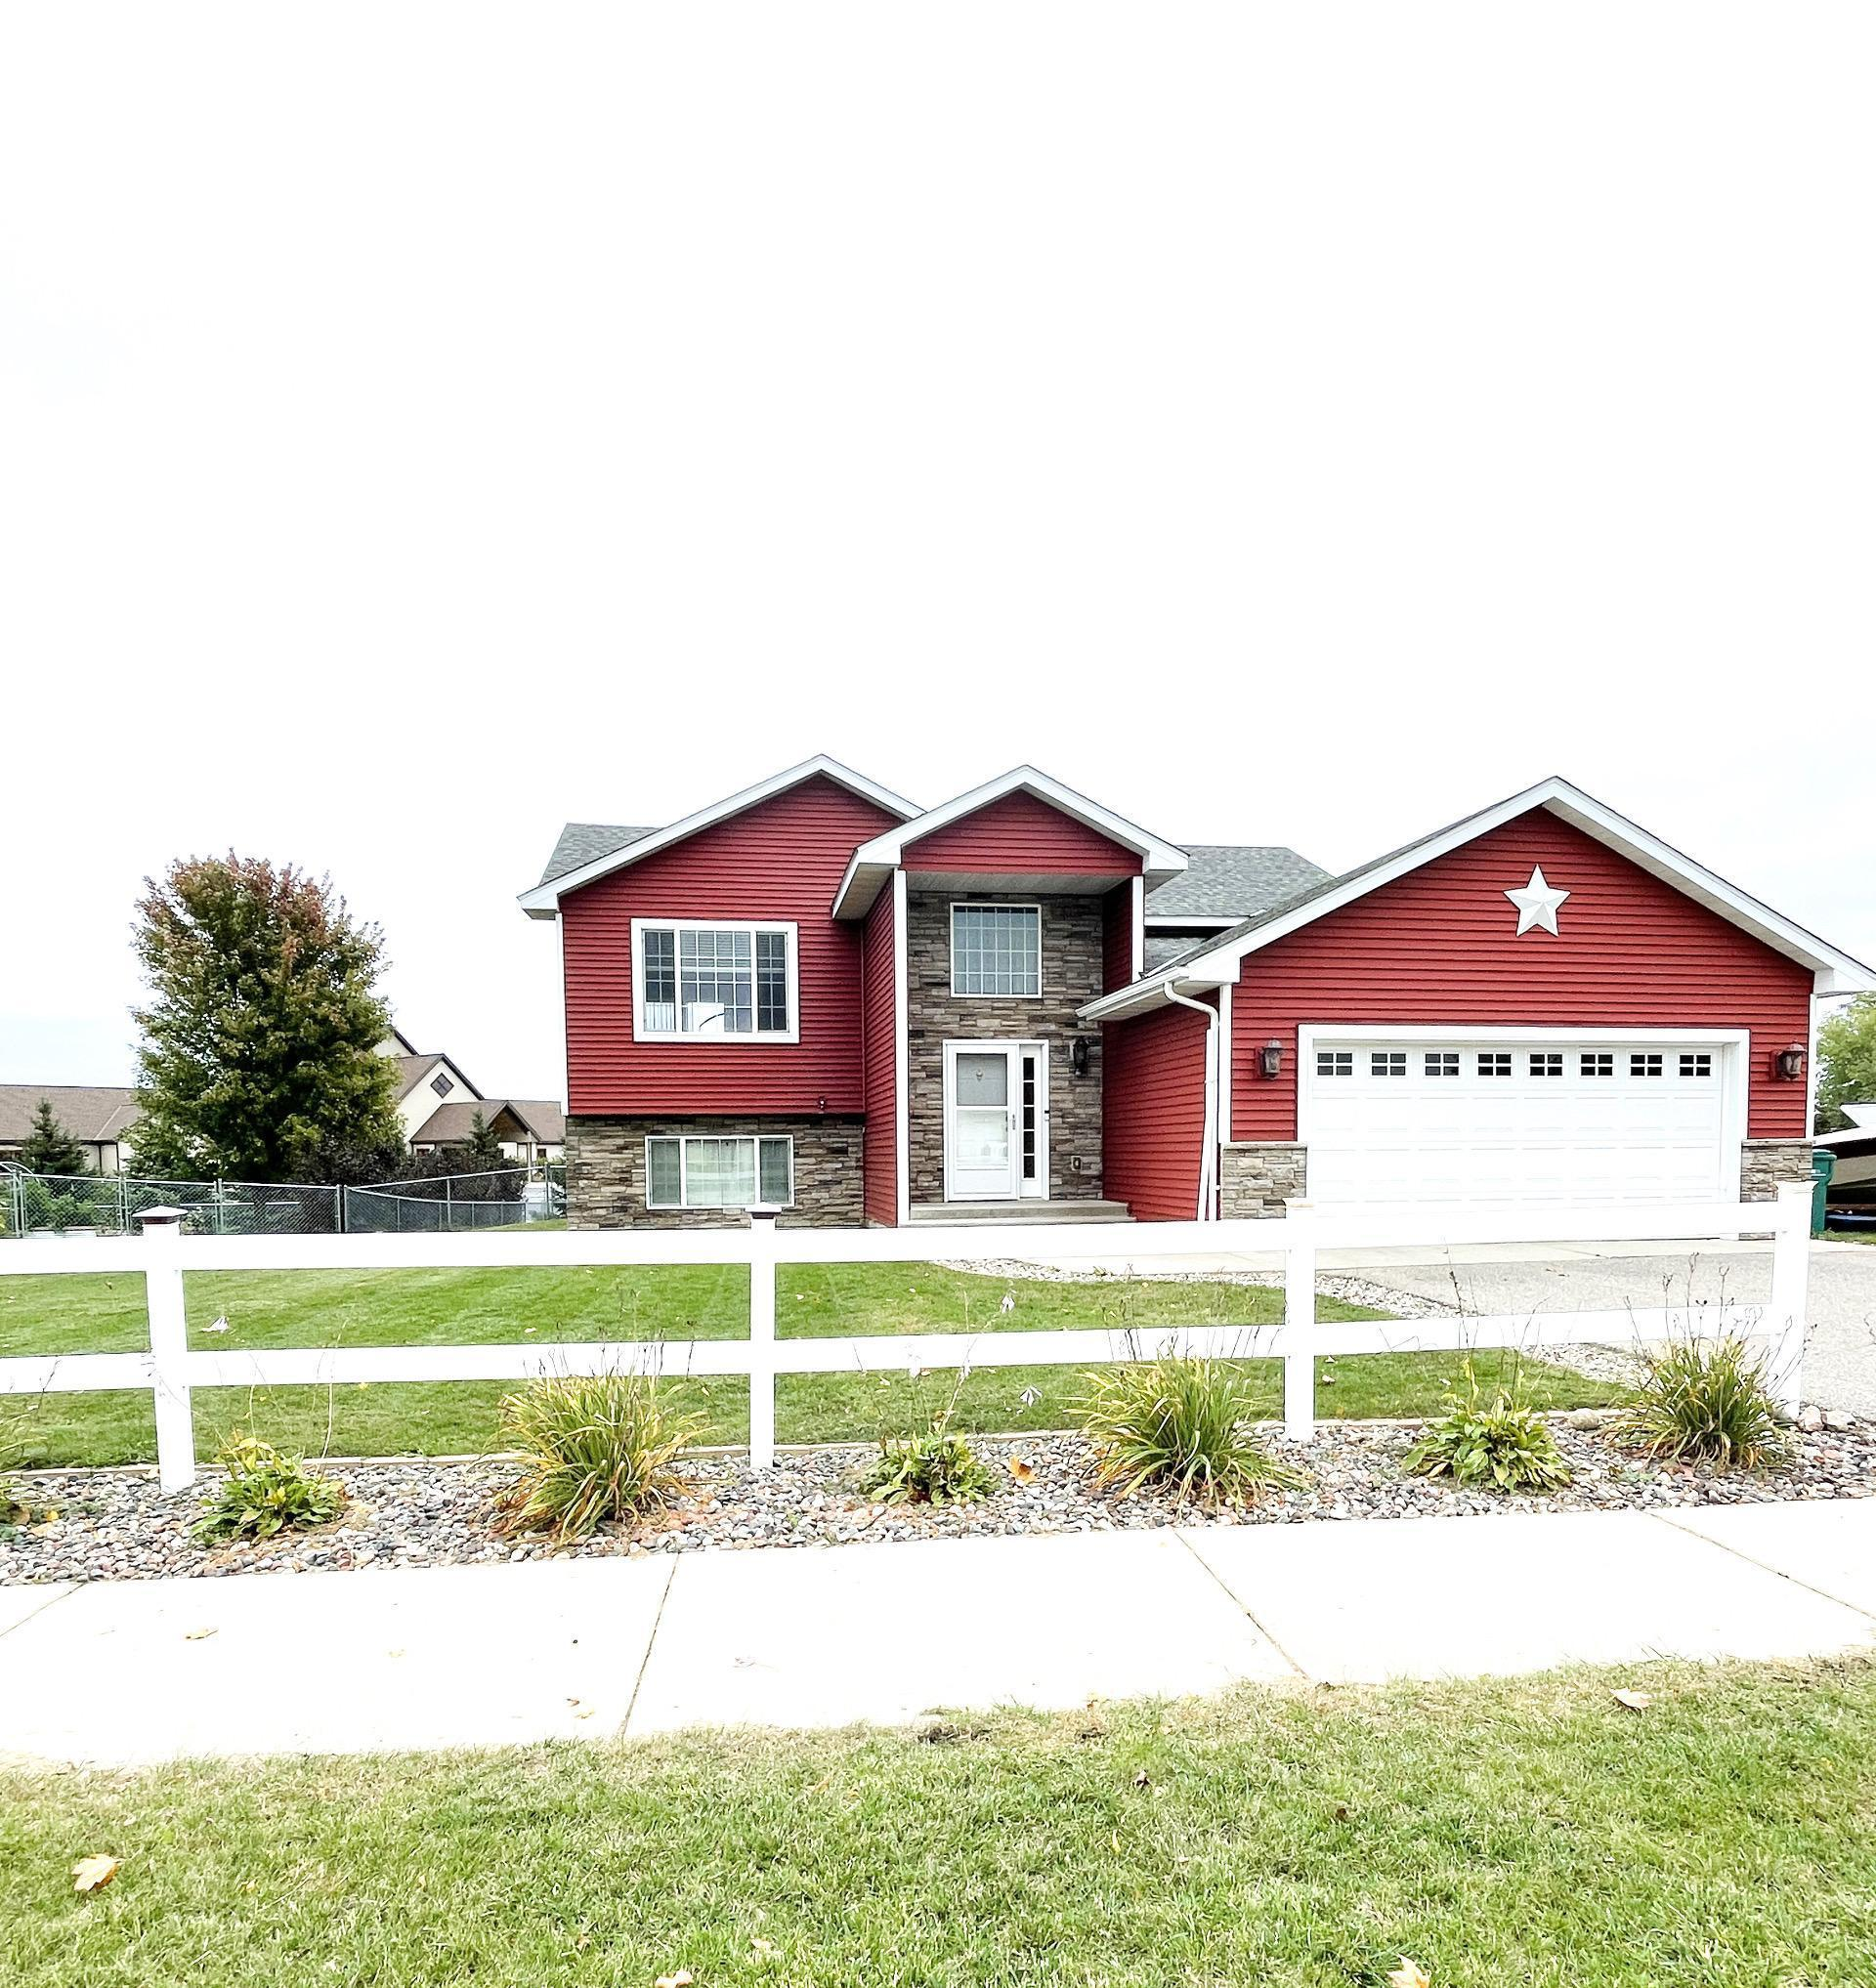 **Welcome home to this beautiful split level home!  Great property in a quiet neighborhood with fully fenced in yard.  Kitchen boasts stainless steel appliances and open concept with large island that is perfect for entertaining.  New furnace in 2018 and new AC in 2020!  You won't want to miss this one!